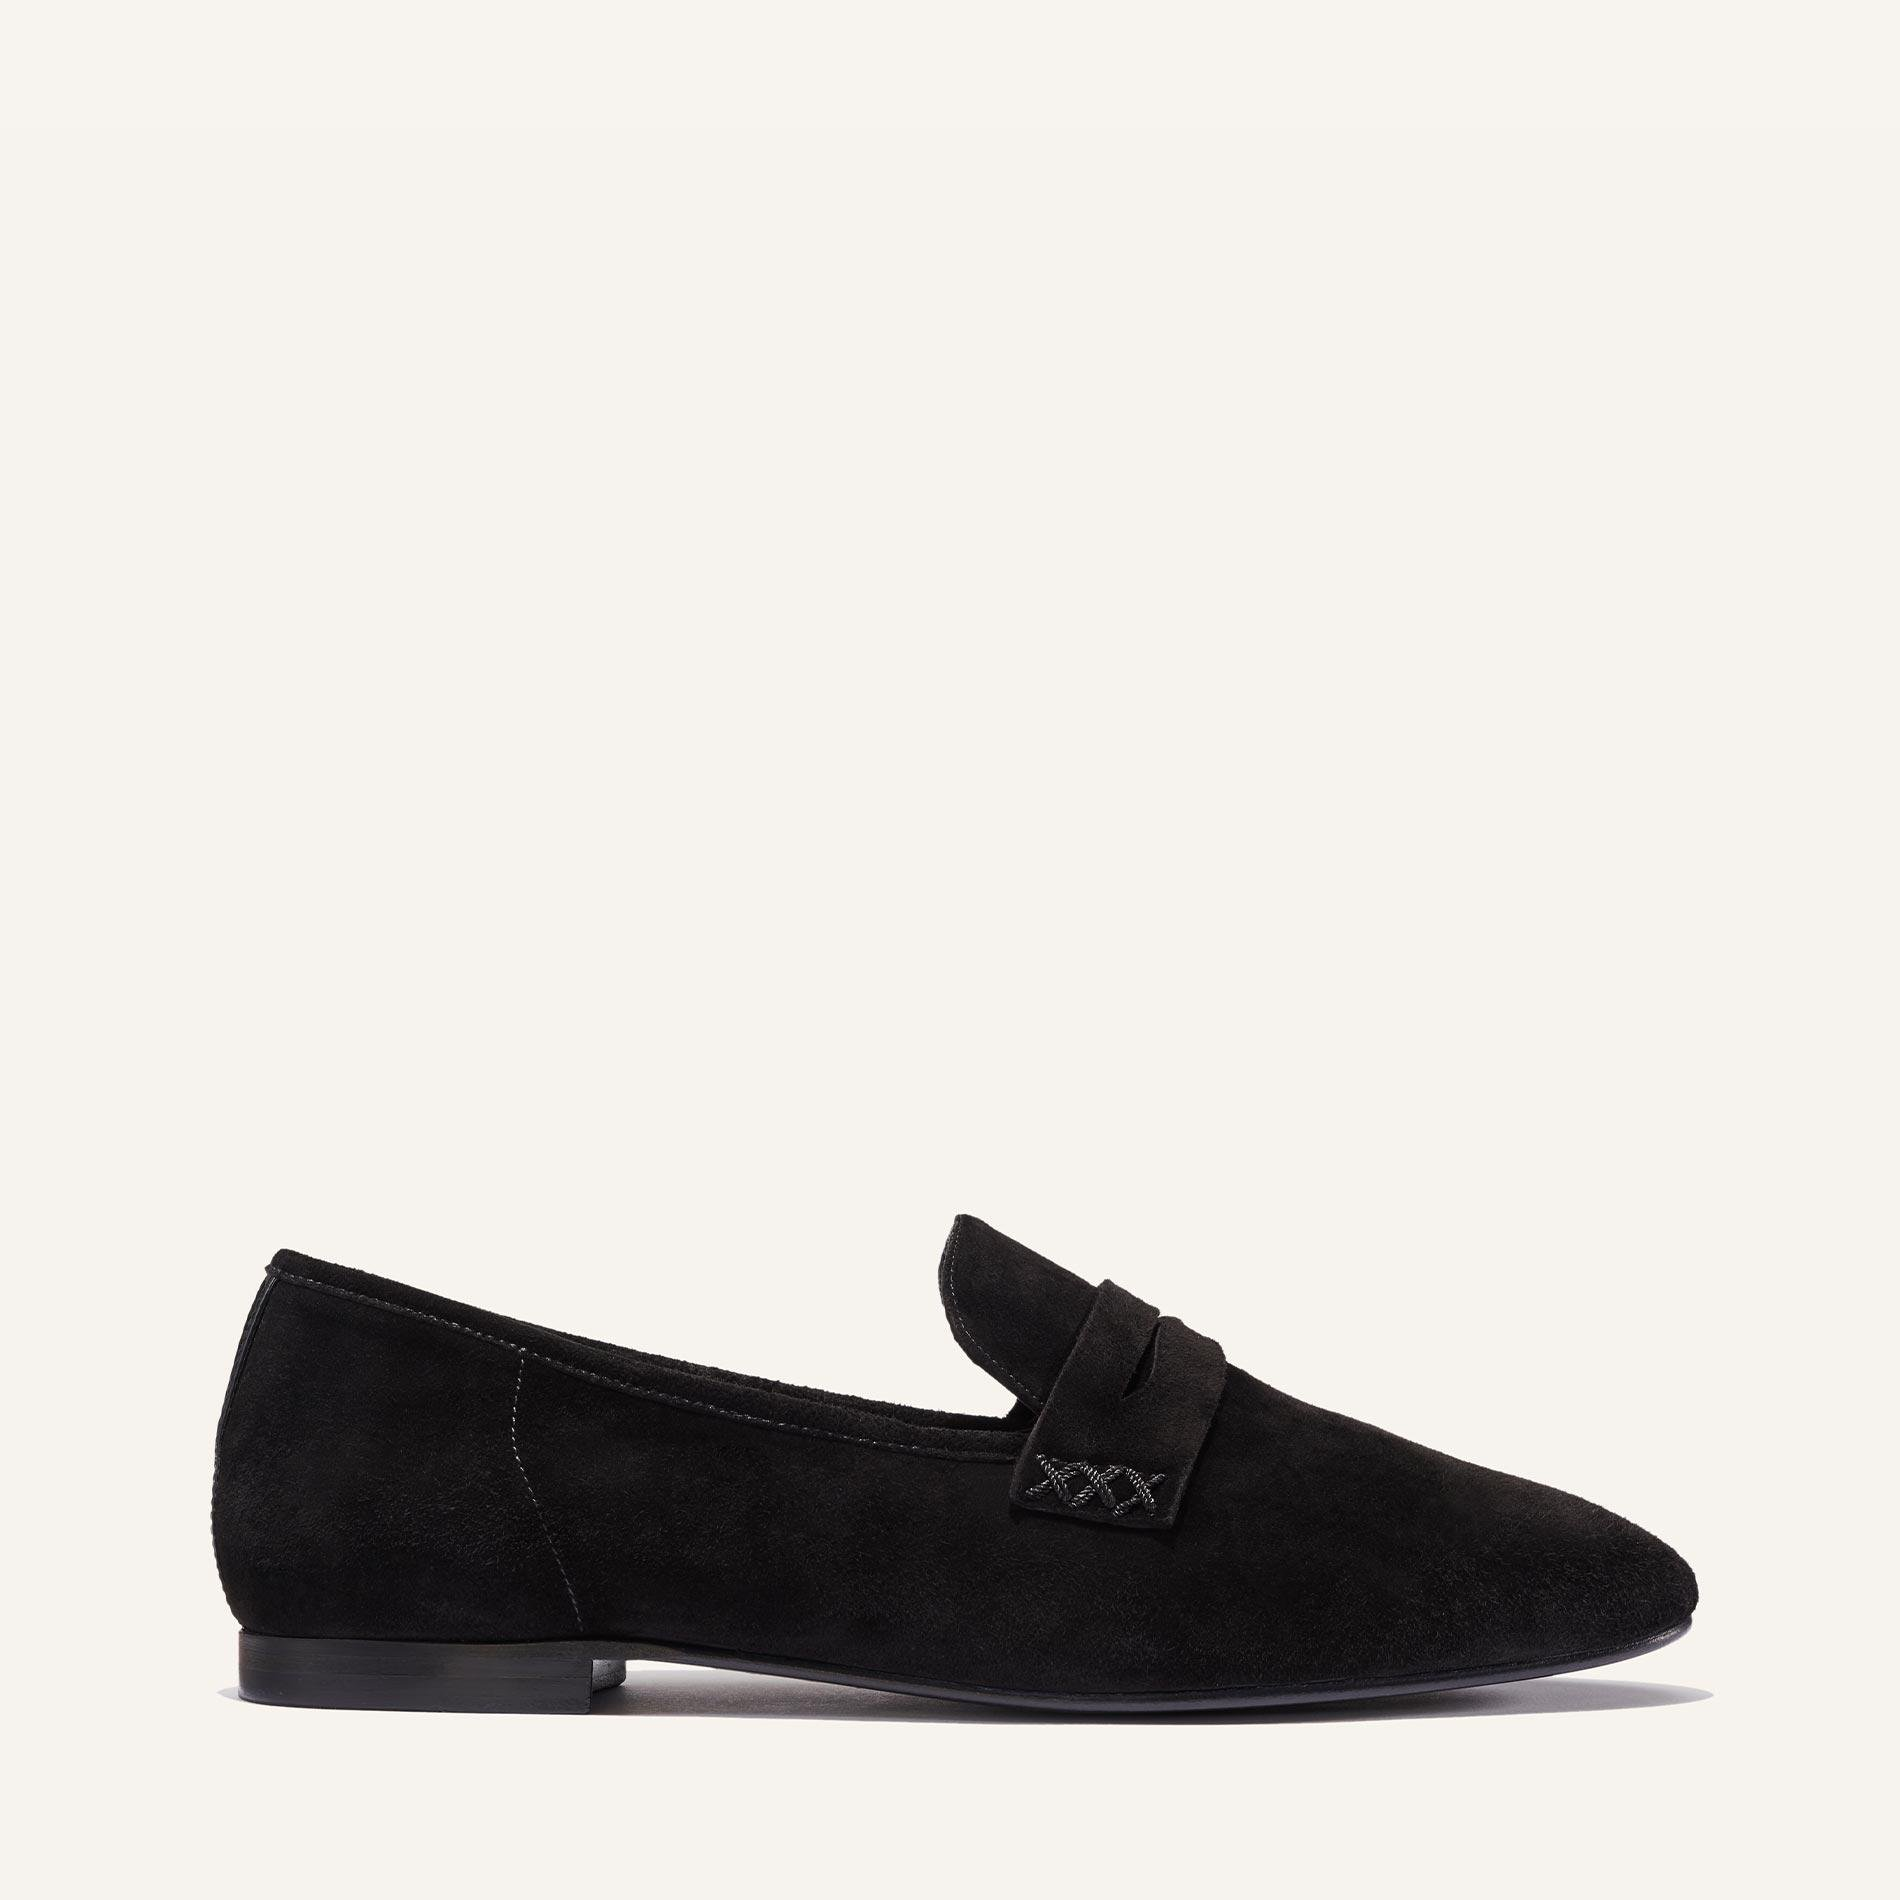 The Penny - Black Suede 1